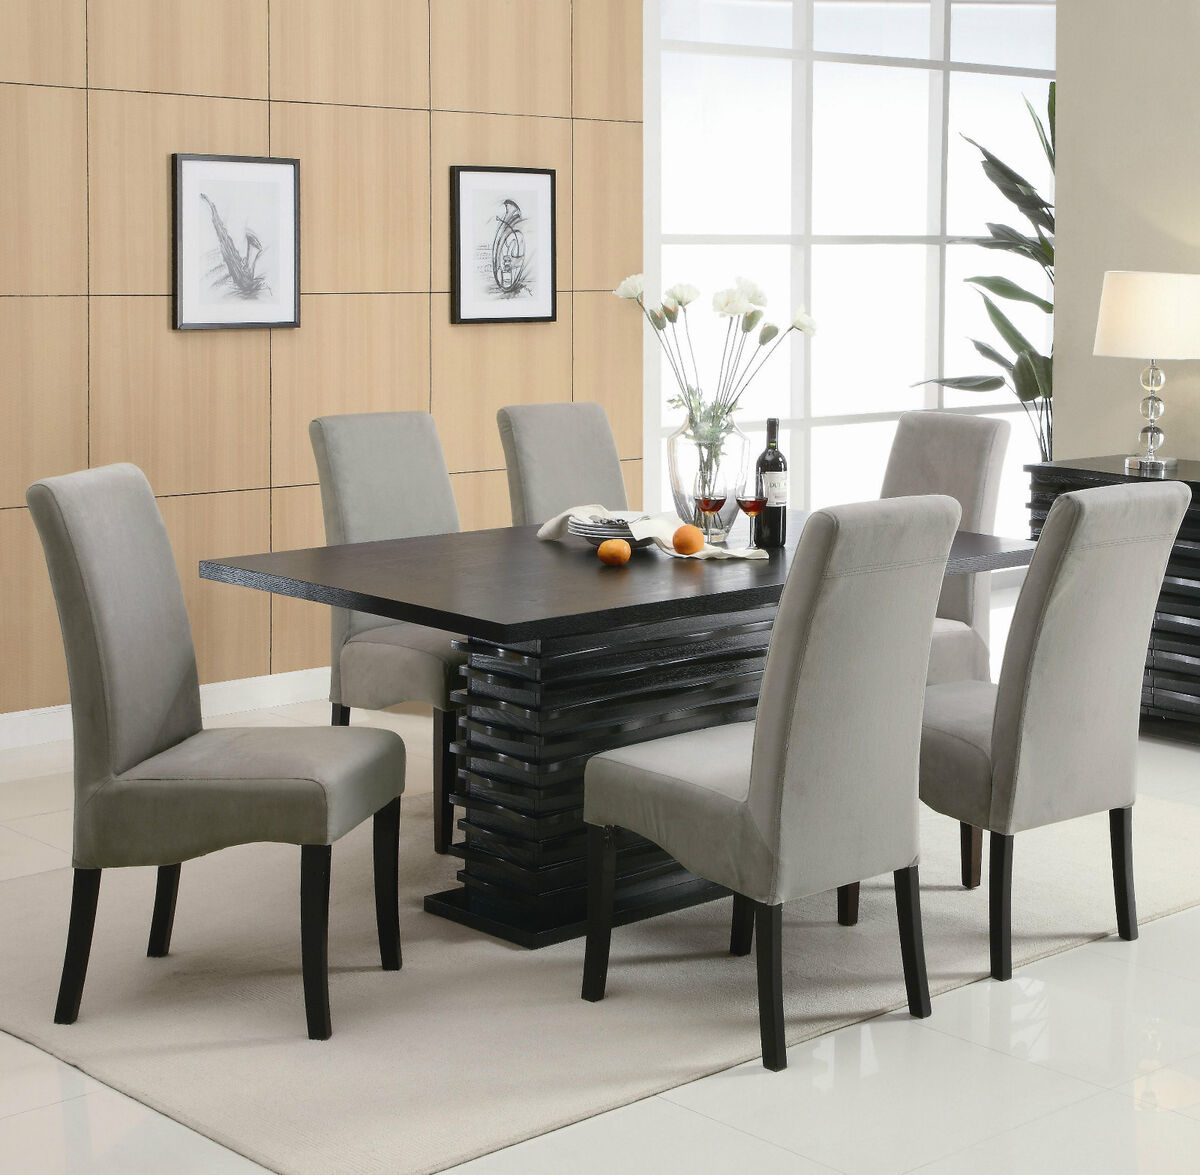 Outstanding Contemporary Dining Table Sets 1200 x 1175 · 161 kB · jpeg